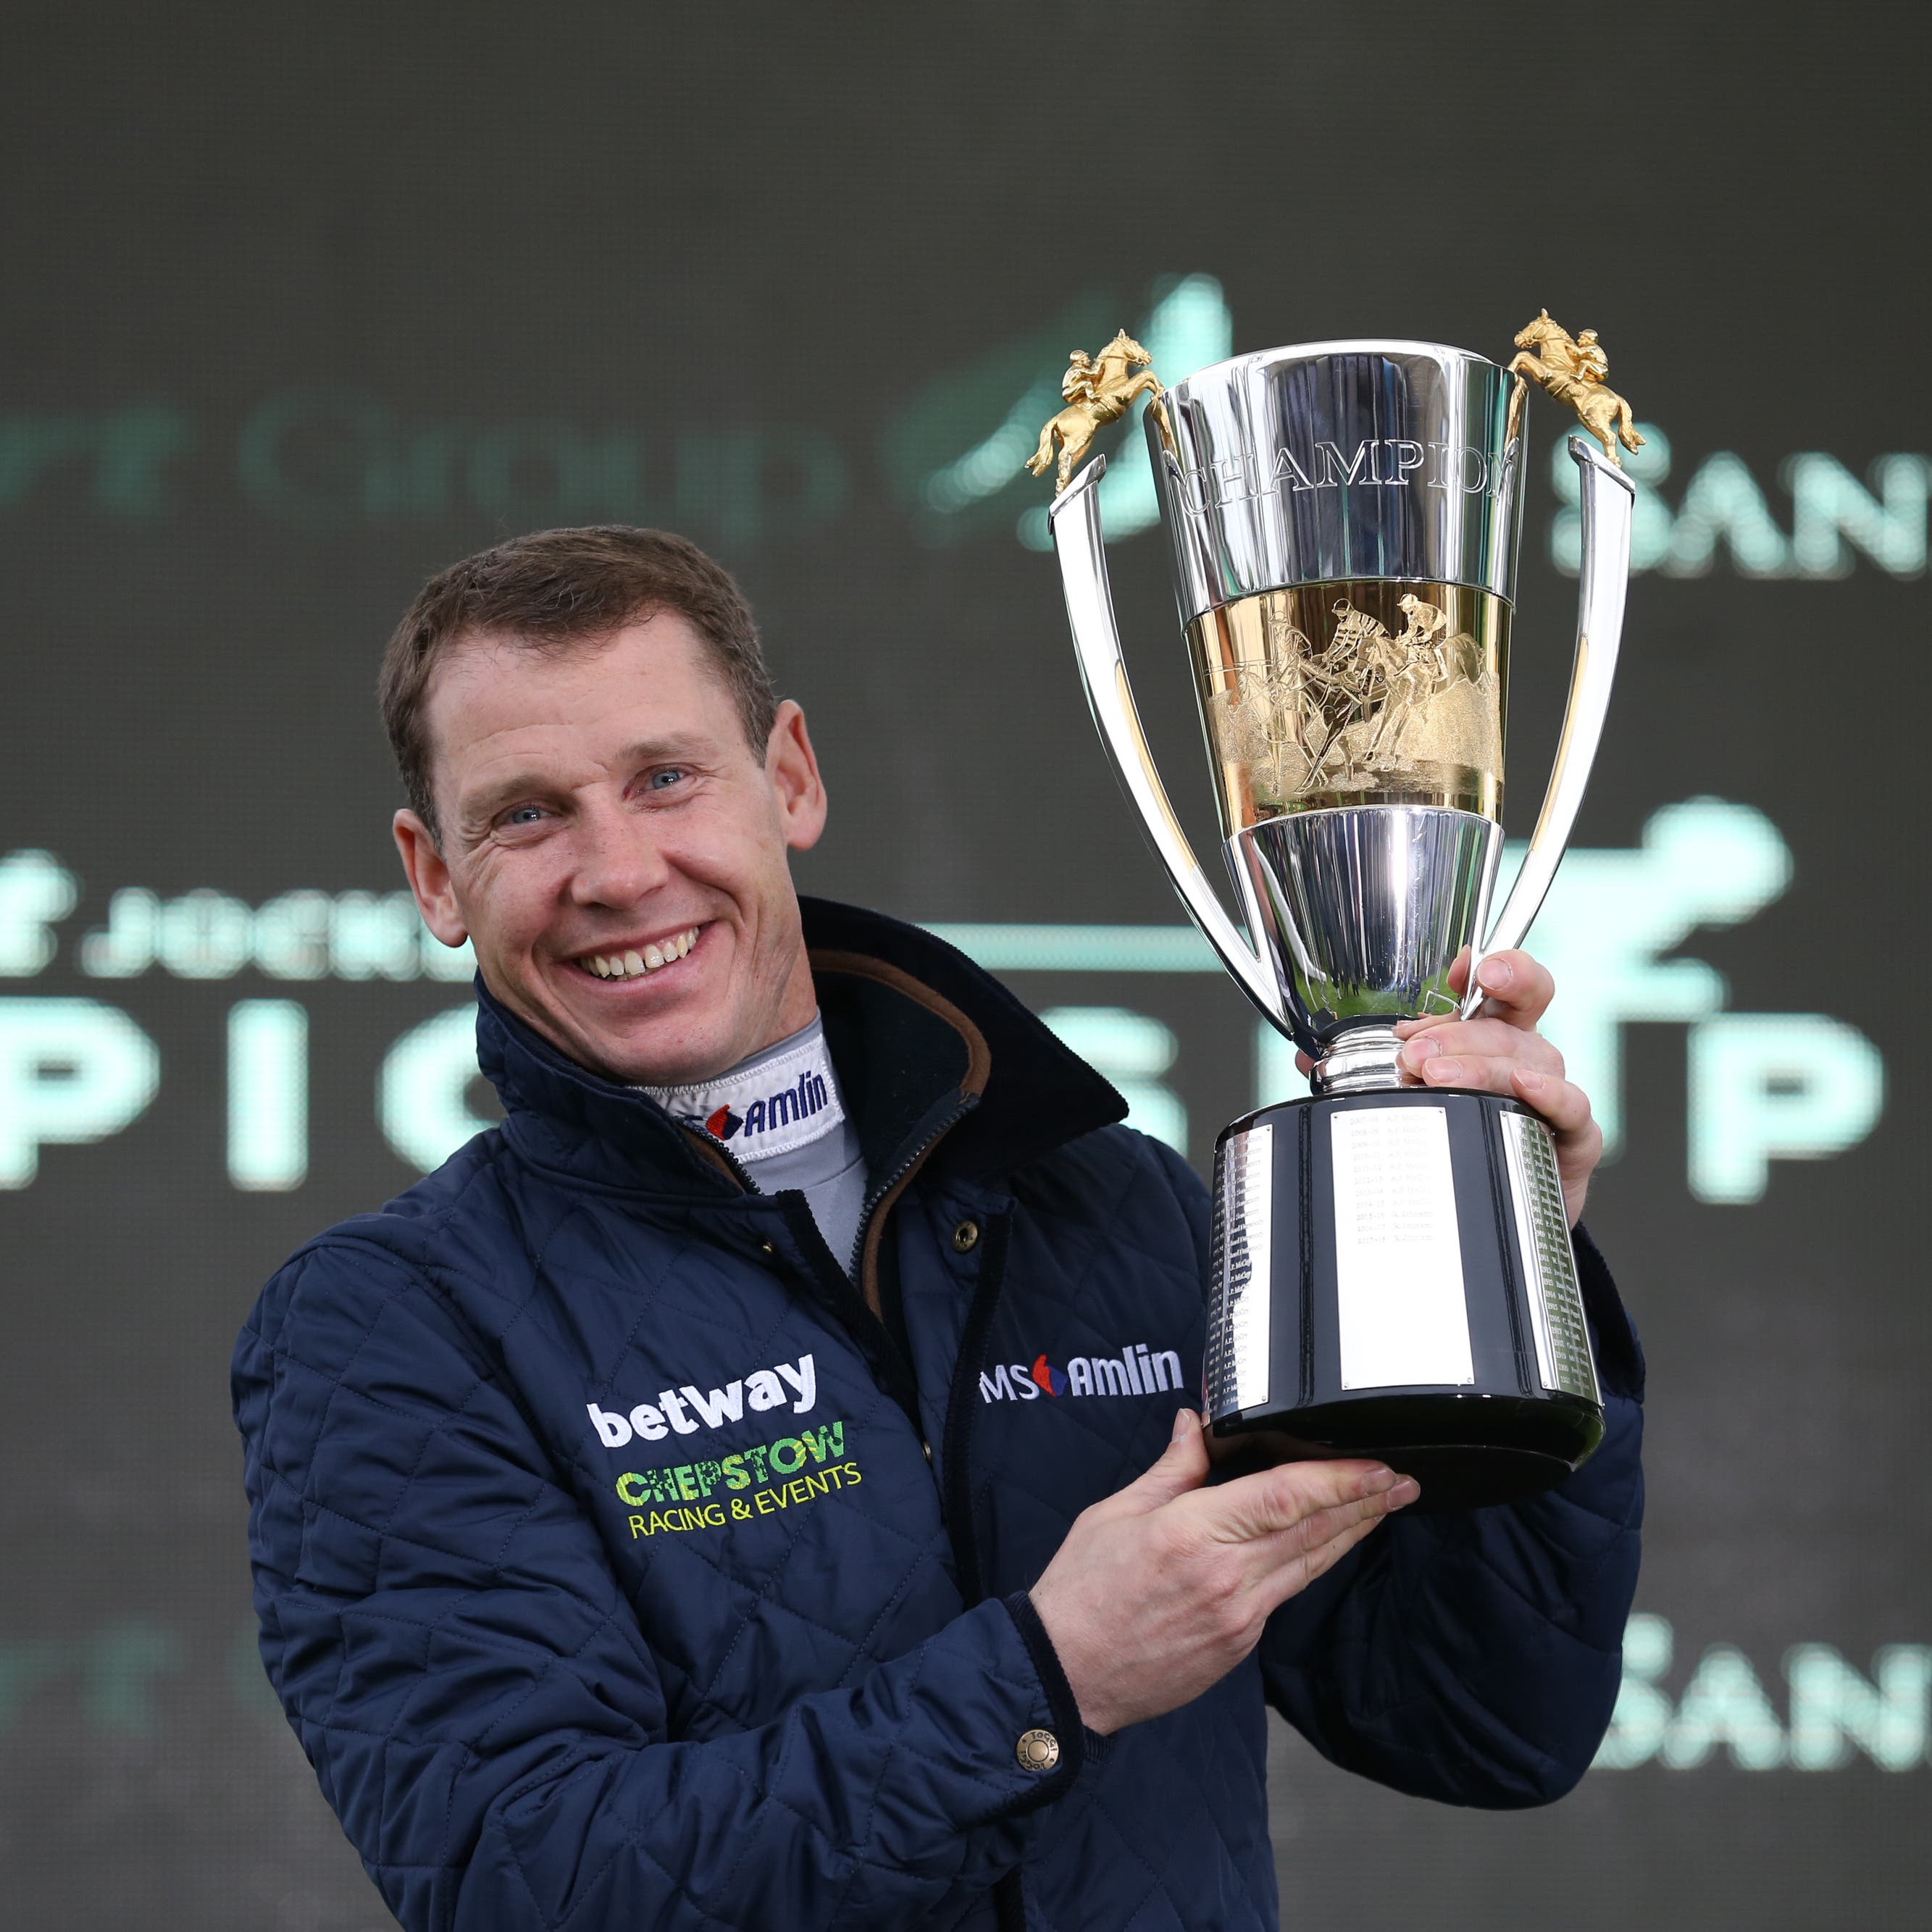 Richard Johnson after being crowned champion jockey for the third time at Sandown in April